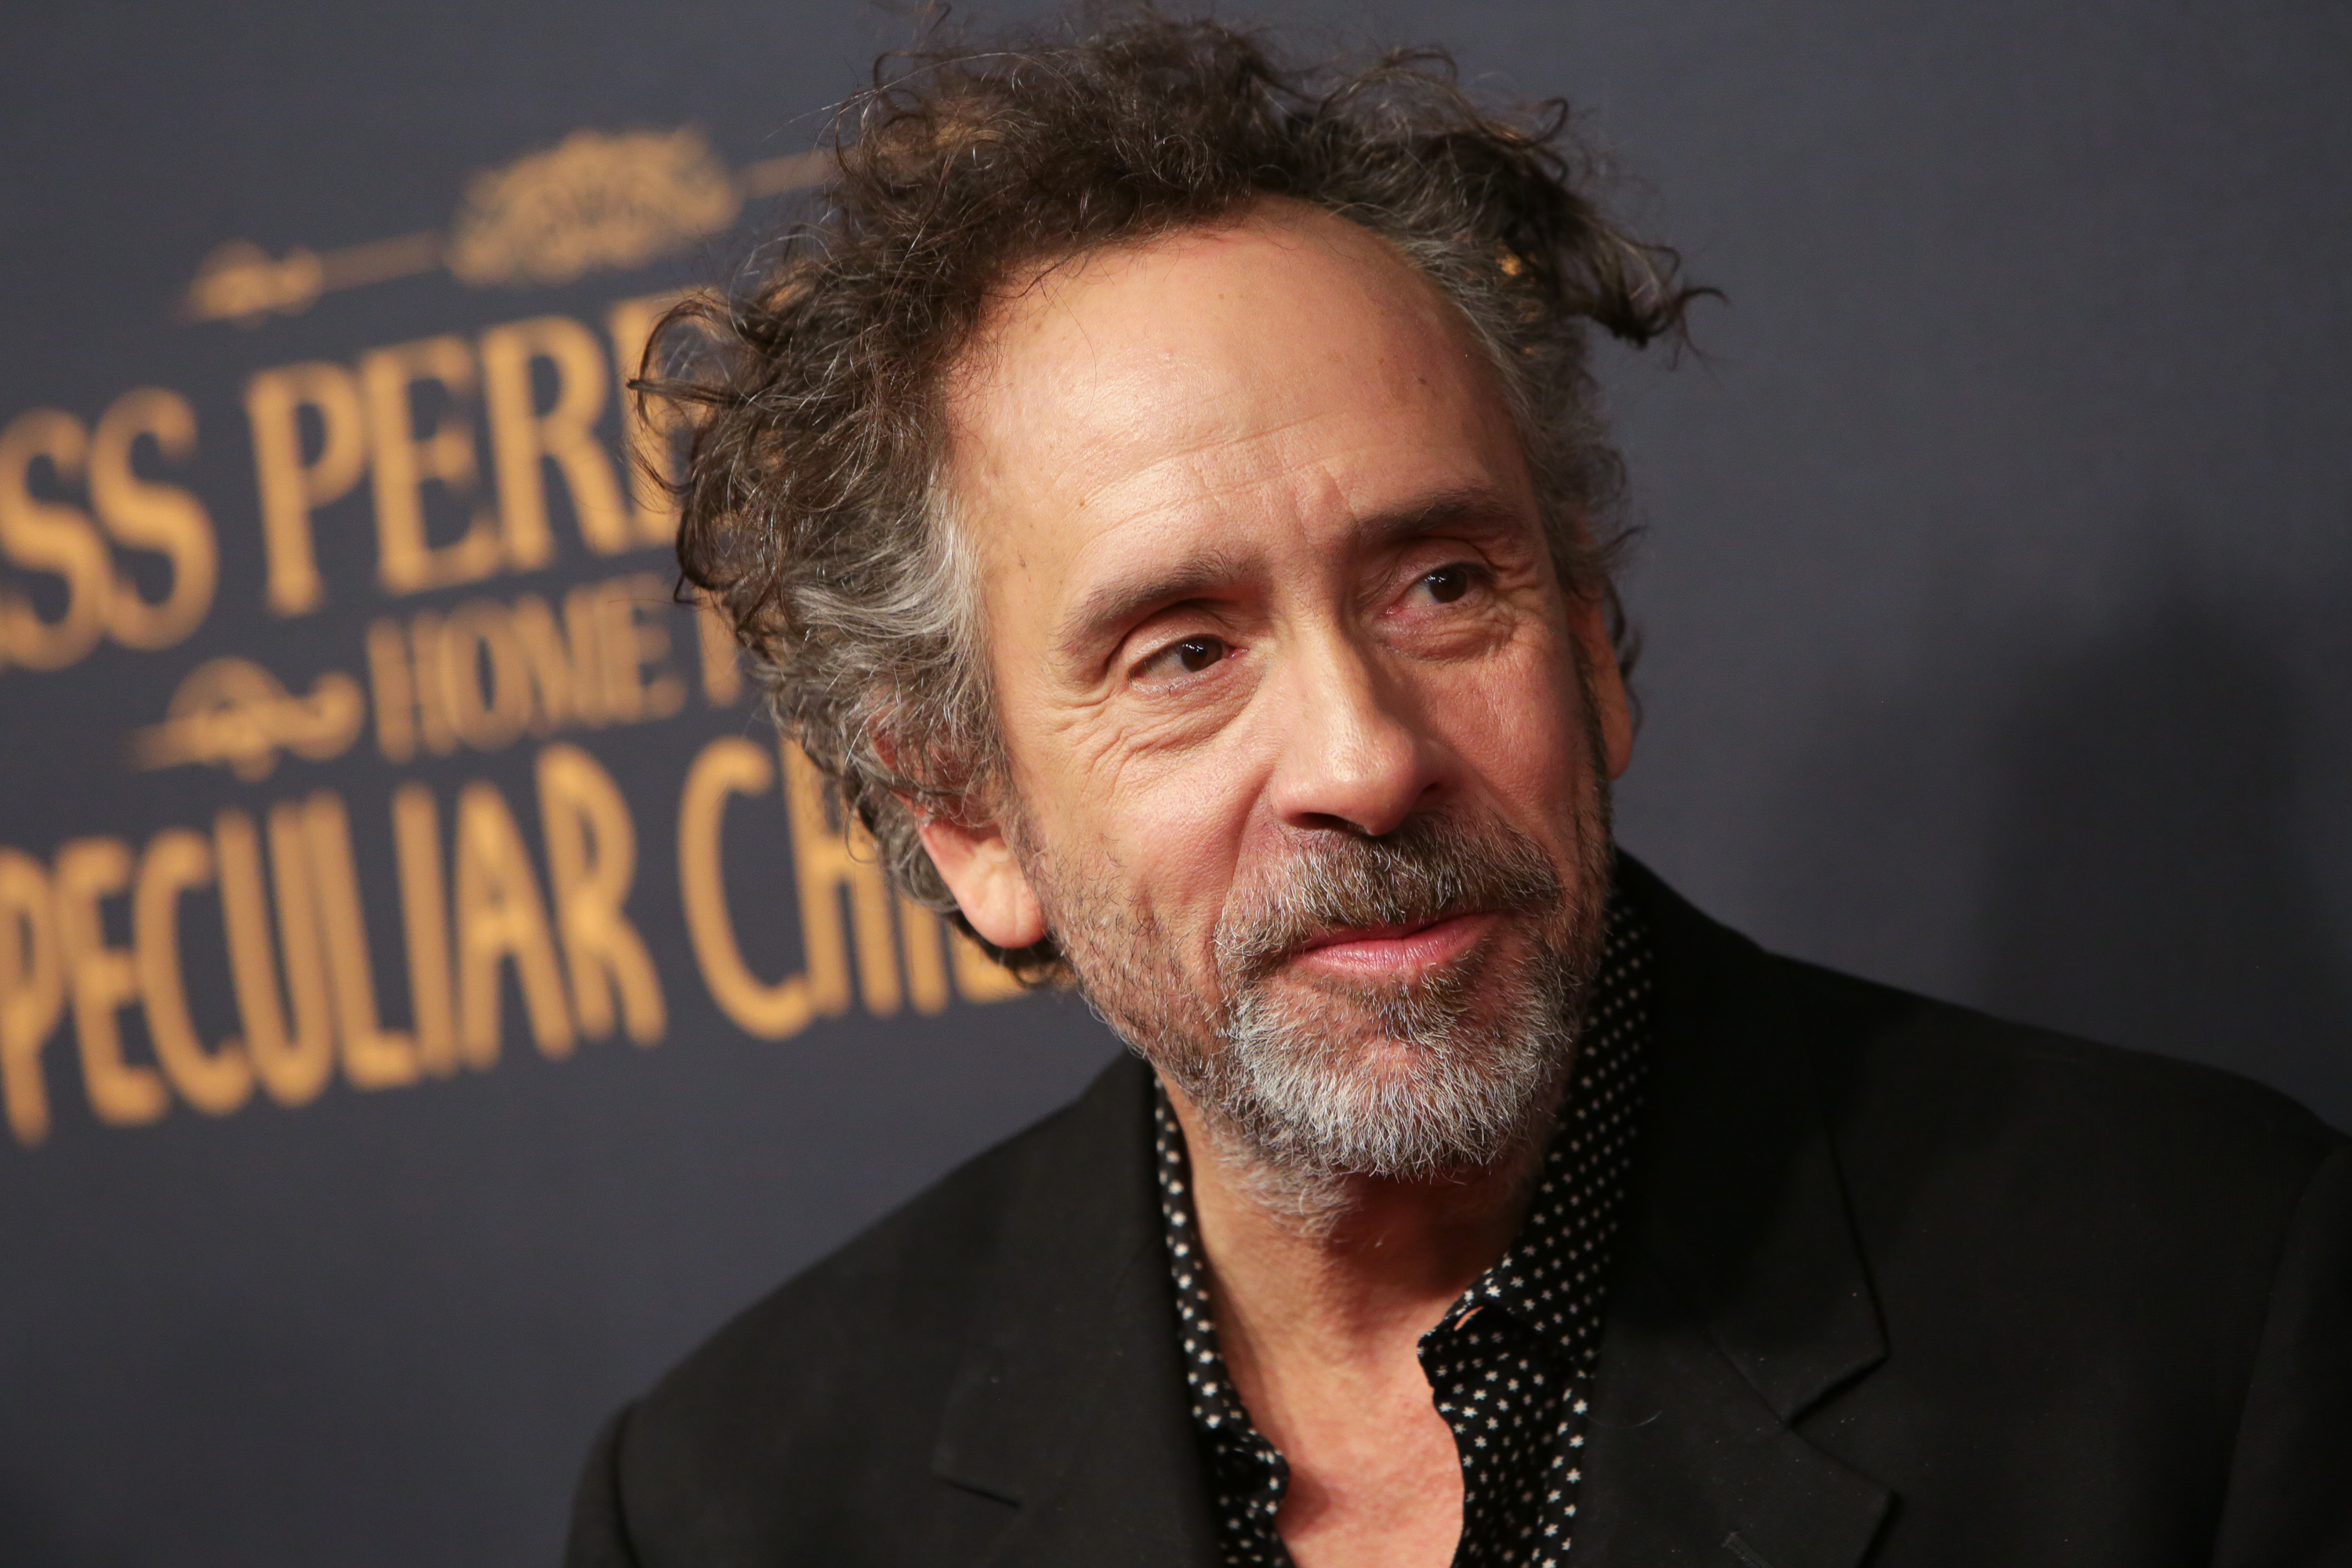 Tim Burton hits back at lack of diversity claims in his Miss Peregrine adaptation